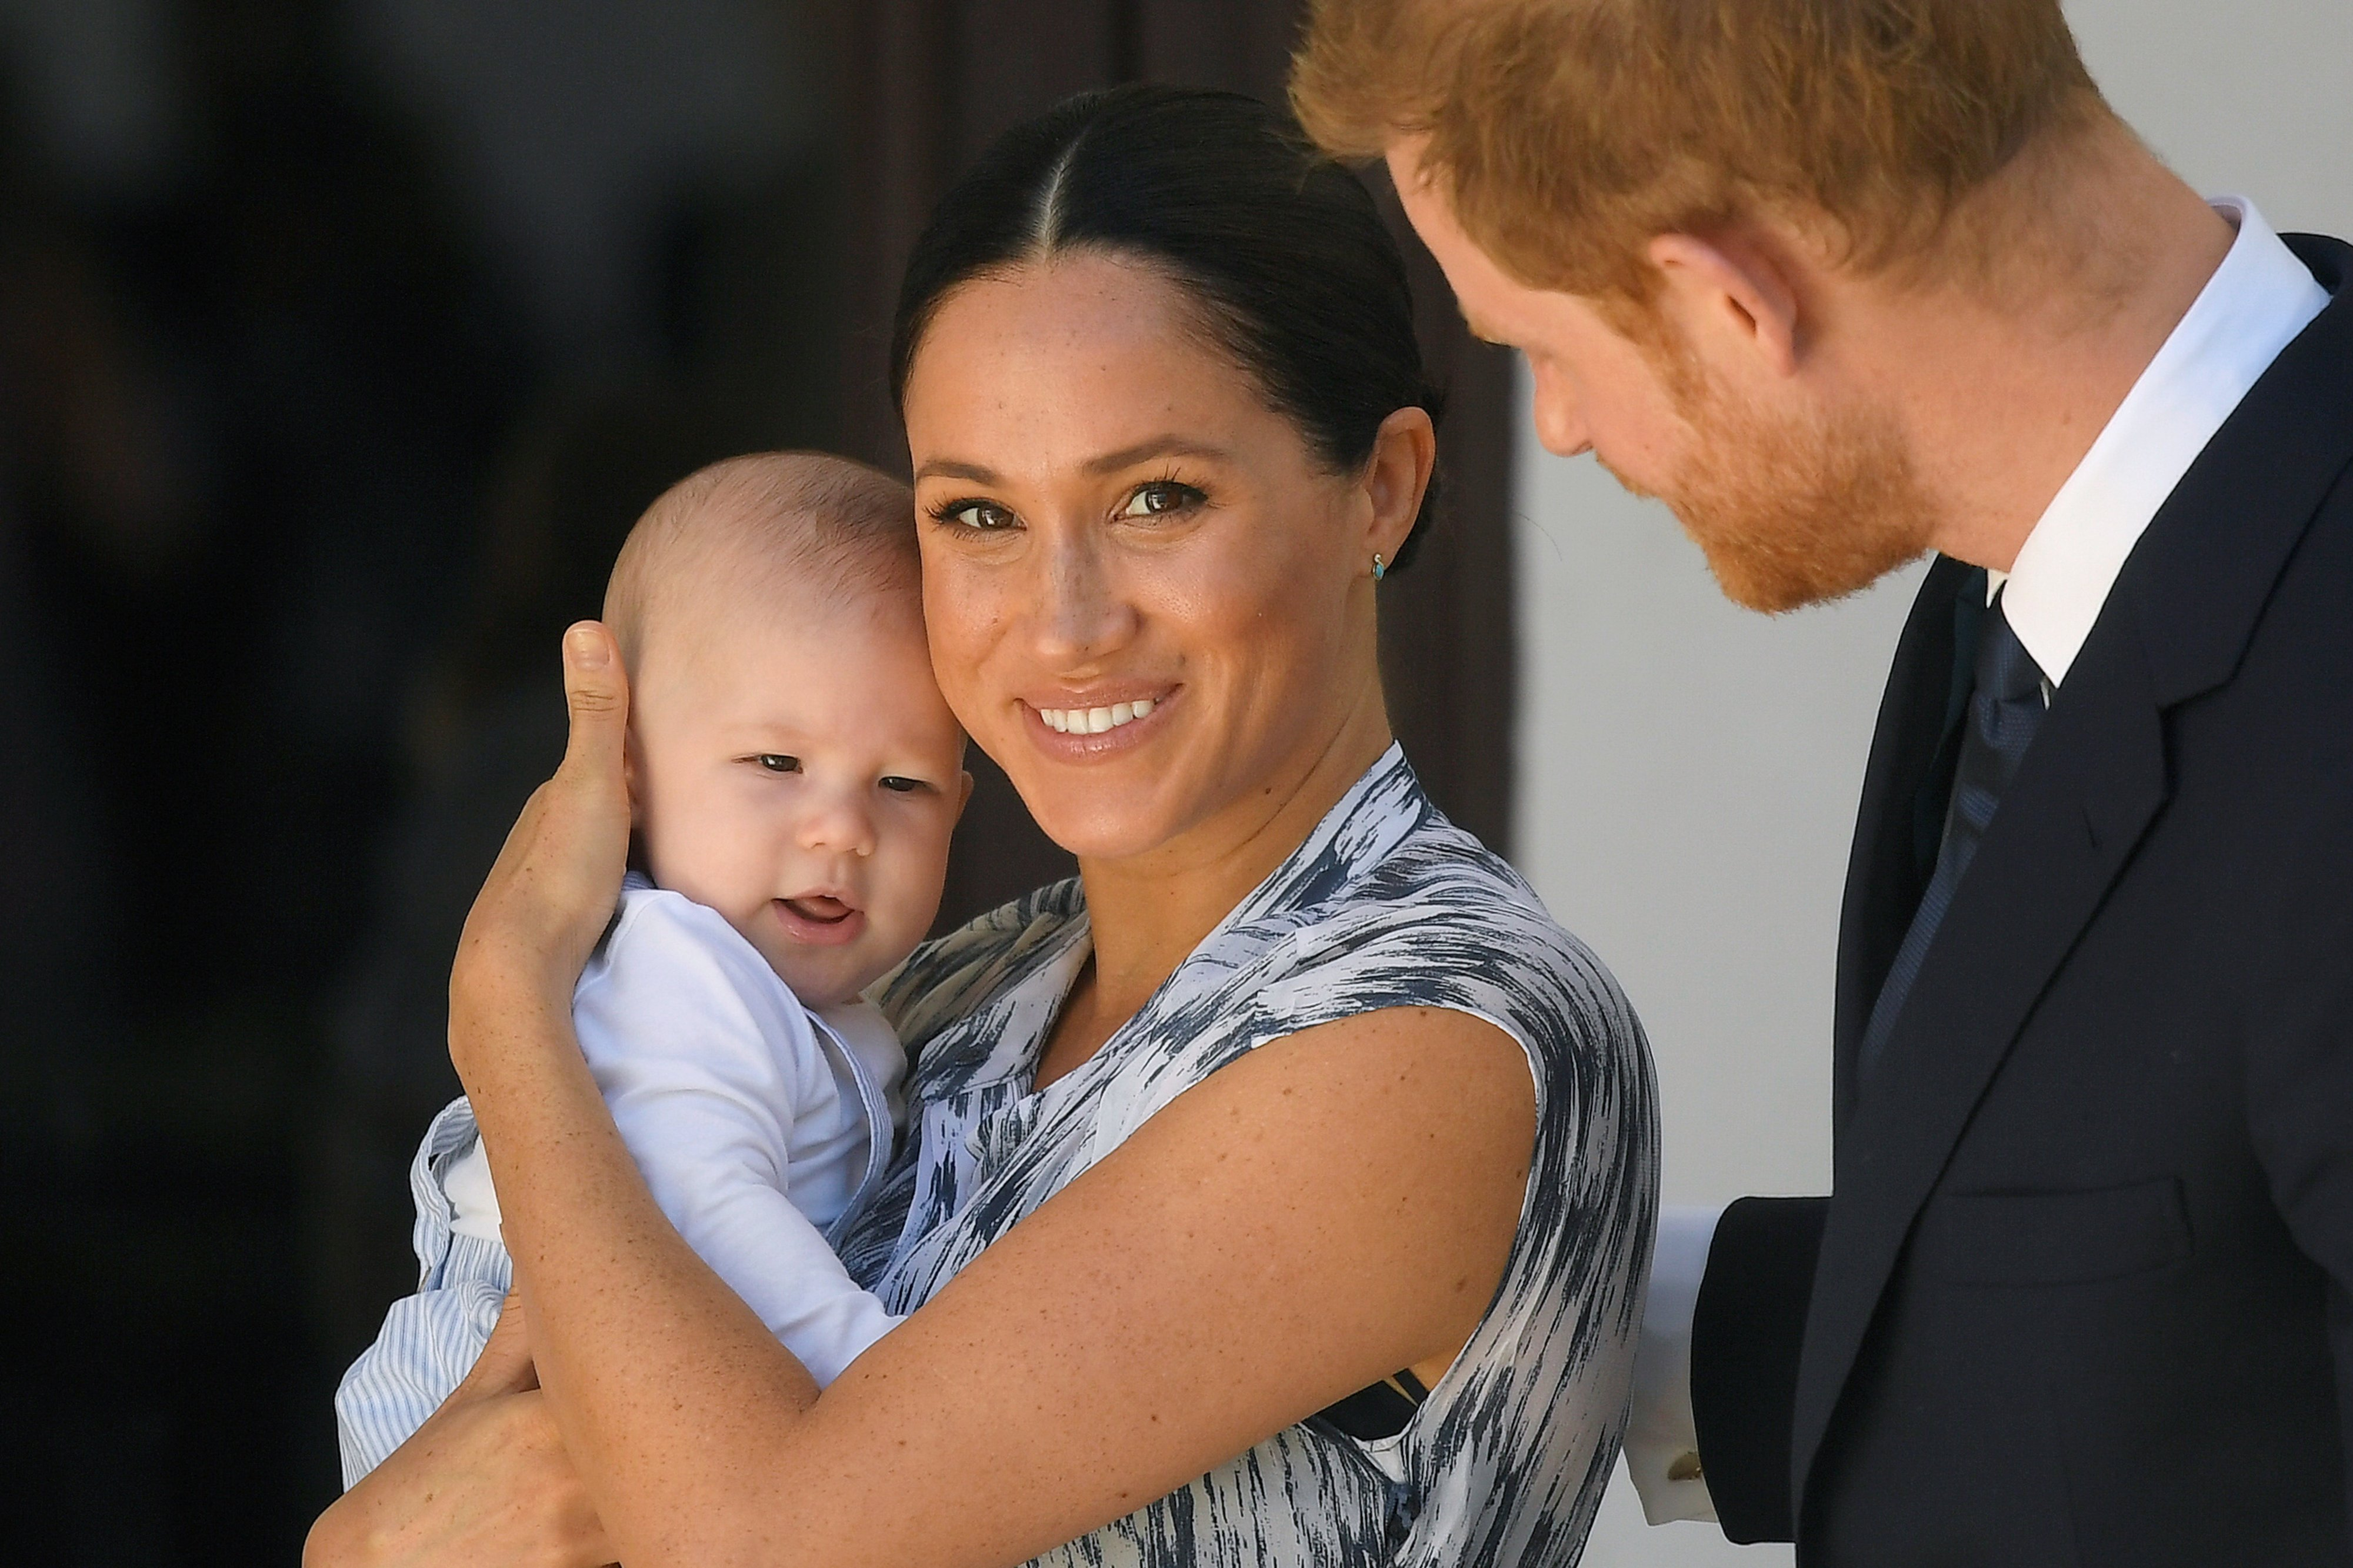 Image Credits: Getty Images / Toby Melville - Pool   Prince Harry, Duke of Sussex and Meghan, Duchess of Sussex and their baby son Archie Mountbatten-Windsor at a meeting with Archbishop Desmond Tutu at the Desmond & Leah Tutu Legacy Foundation during their royal tour of South Africa on September 25, 2019 in Cape Town, South Africa.